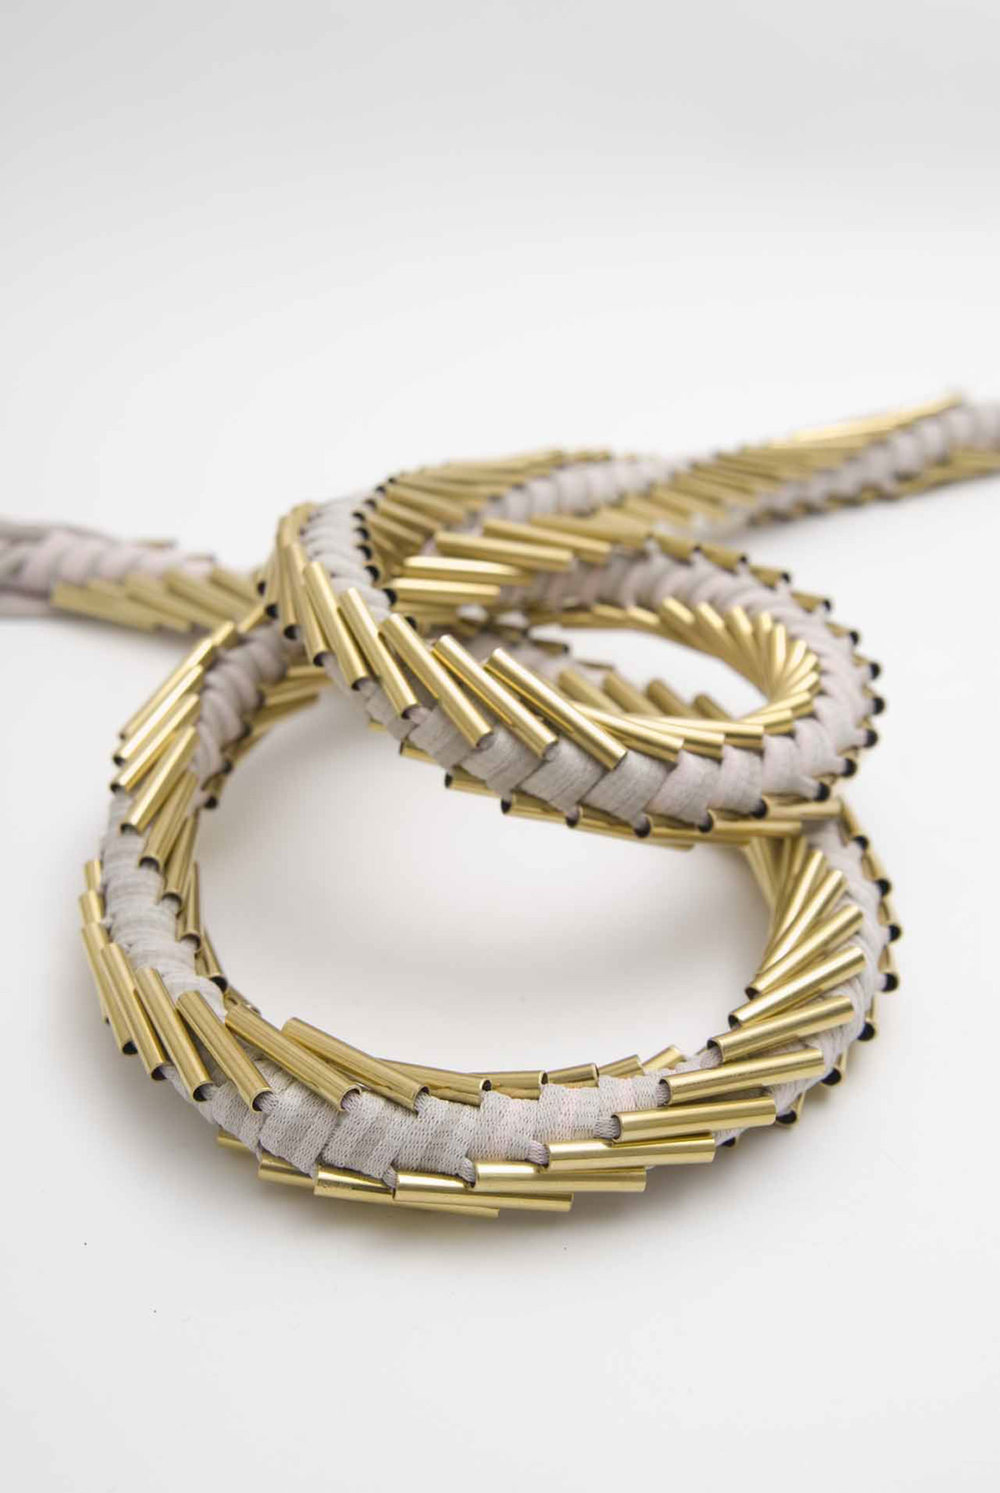 Aimee Betts_Gold Rope_RCA_MA_Textiles.jpg